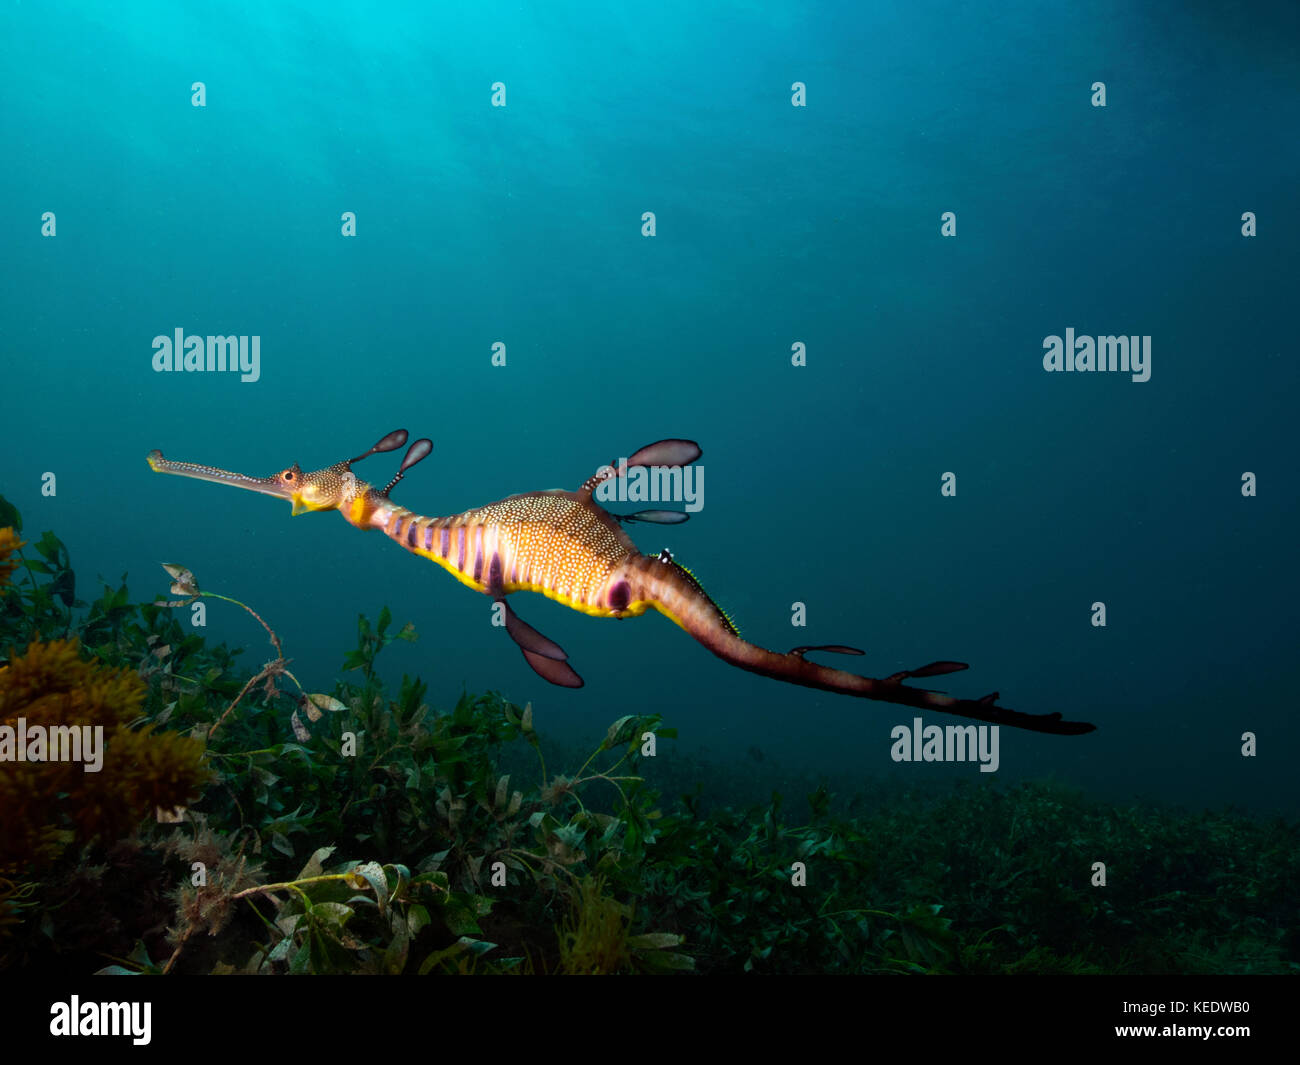 weedy sea dragon essay Young readers will love digging into this passage's cool weedy sea dragon facts, and they'll get a nice reading comprehension workout in the process.